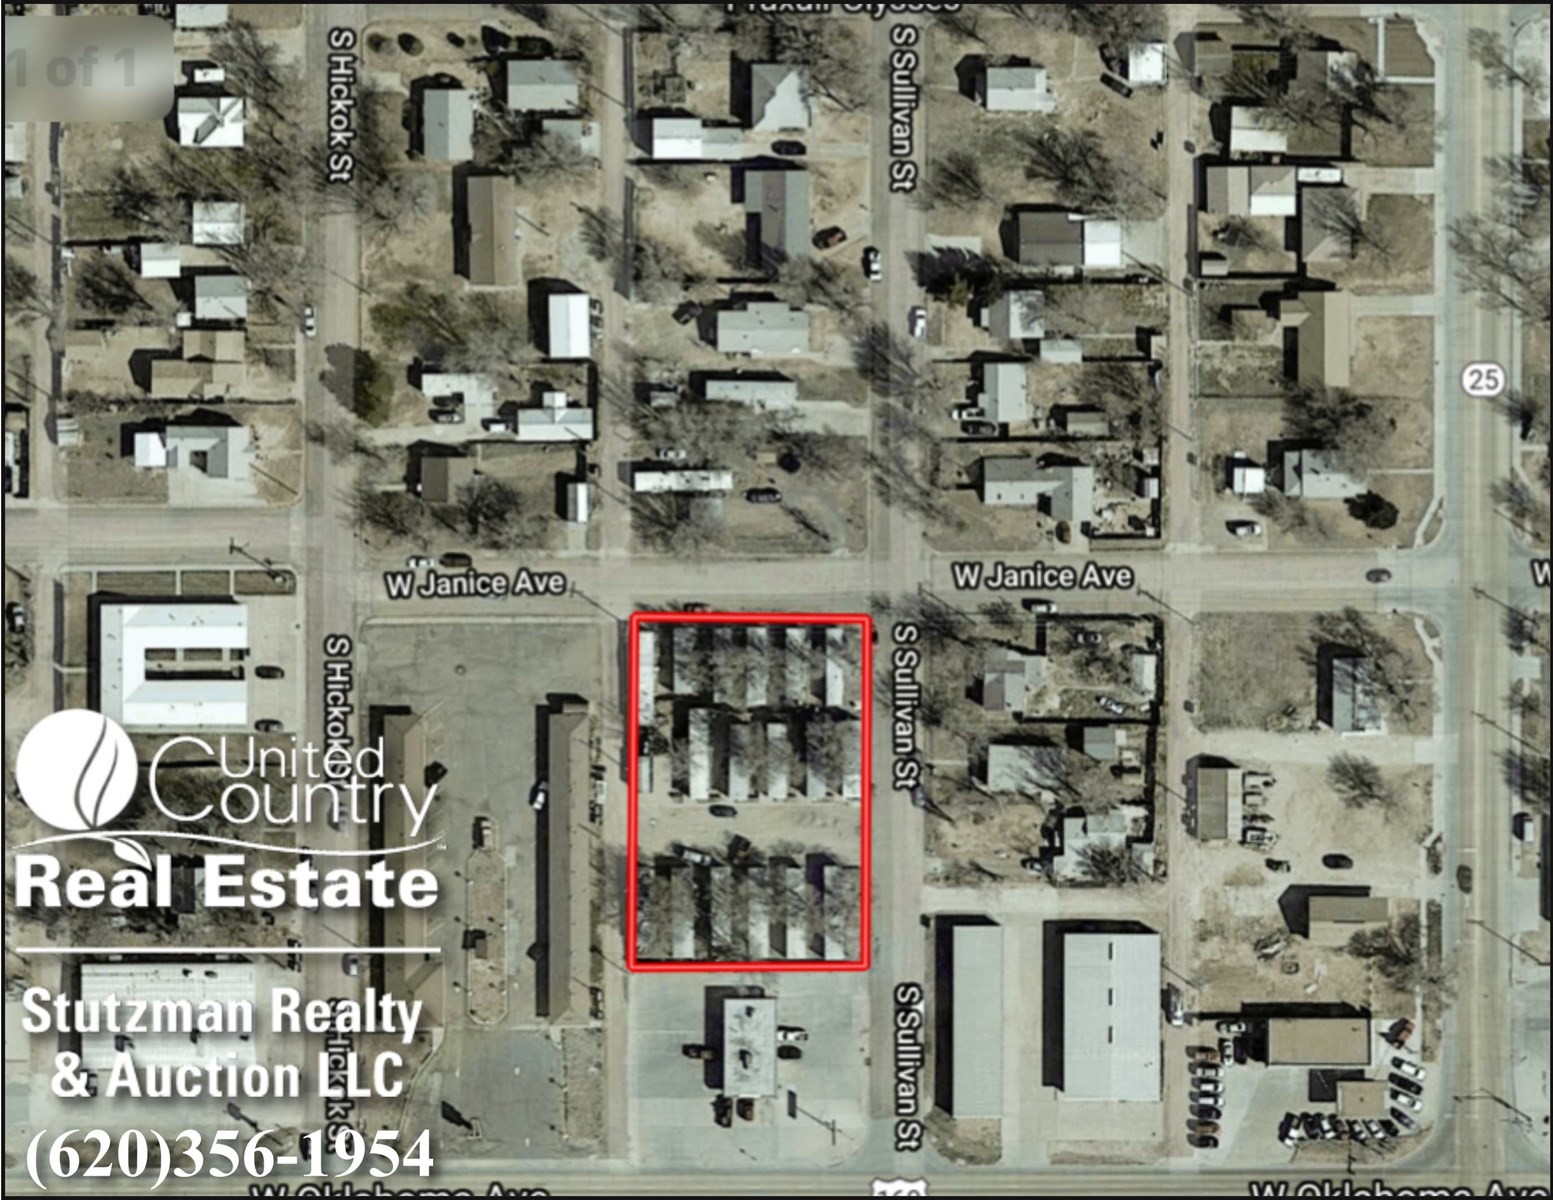 INVESTMENT OPPORTUNITY IN ULYSSES, KANSAS